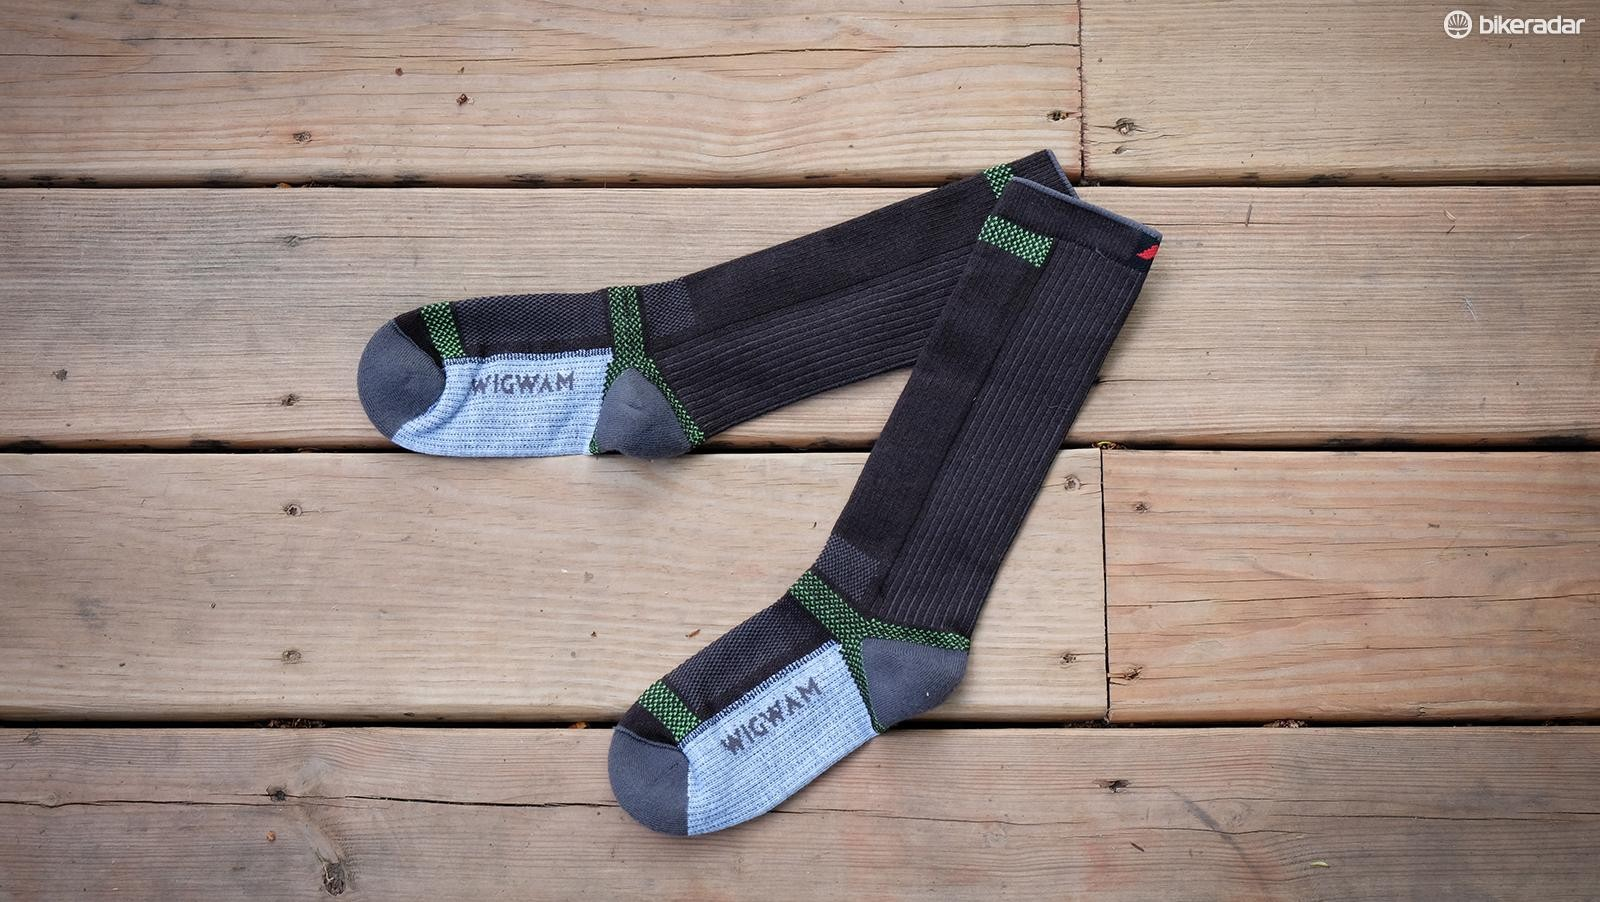 The Ultra Cool-Lite Crew socks rise to the mid-calf and use the company's Ultimax material to aid moisture regulation